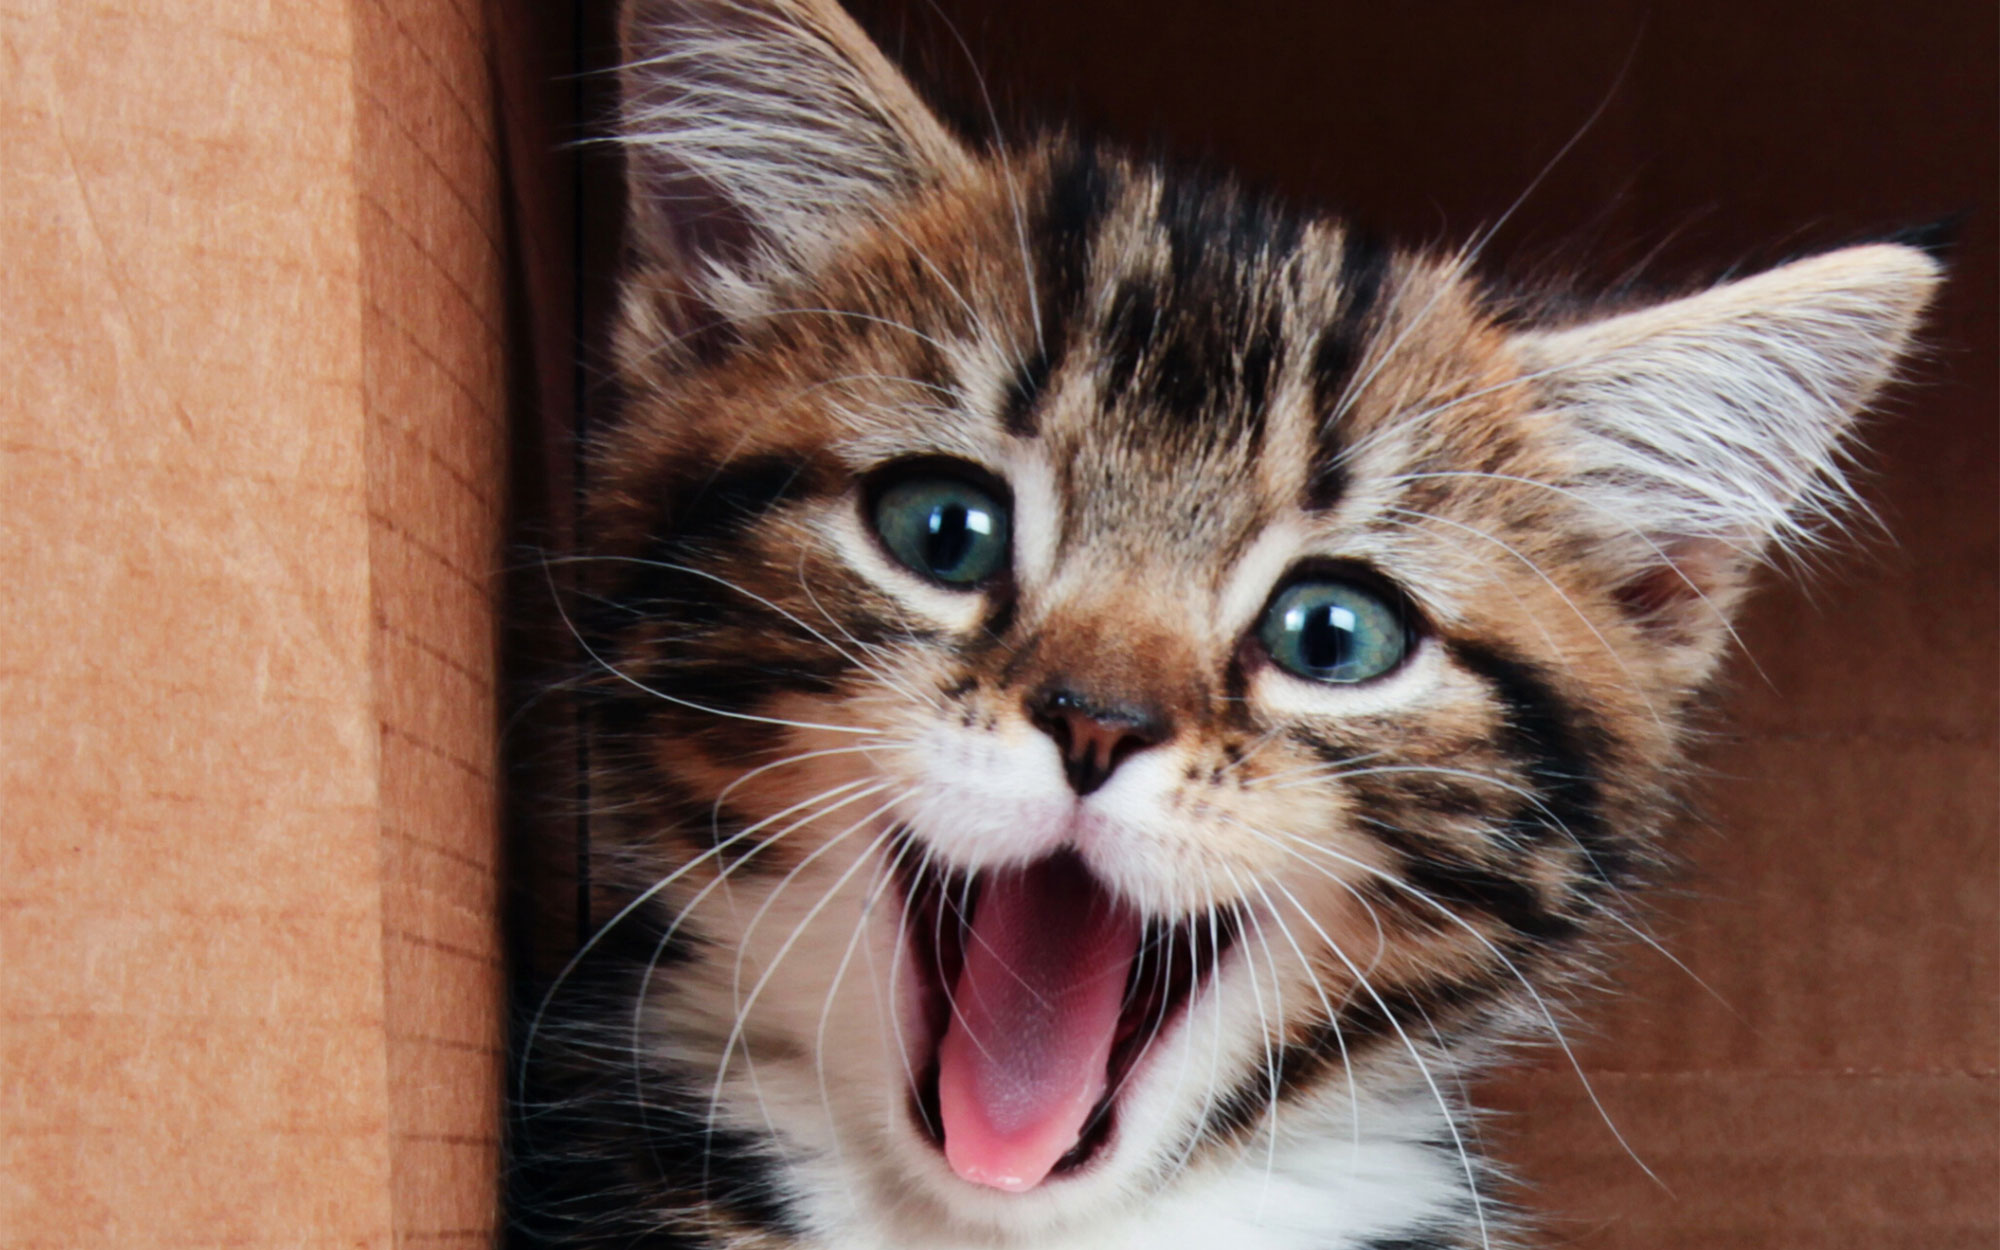 A tabby kitten with its mouth open.